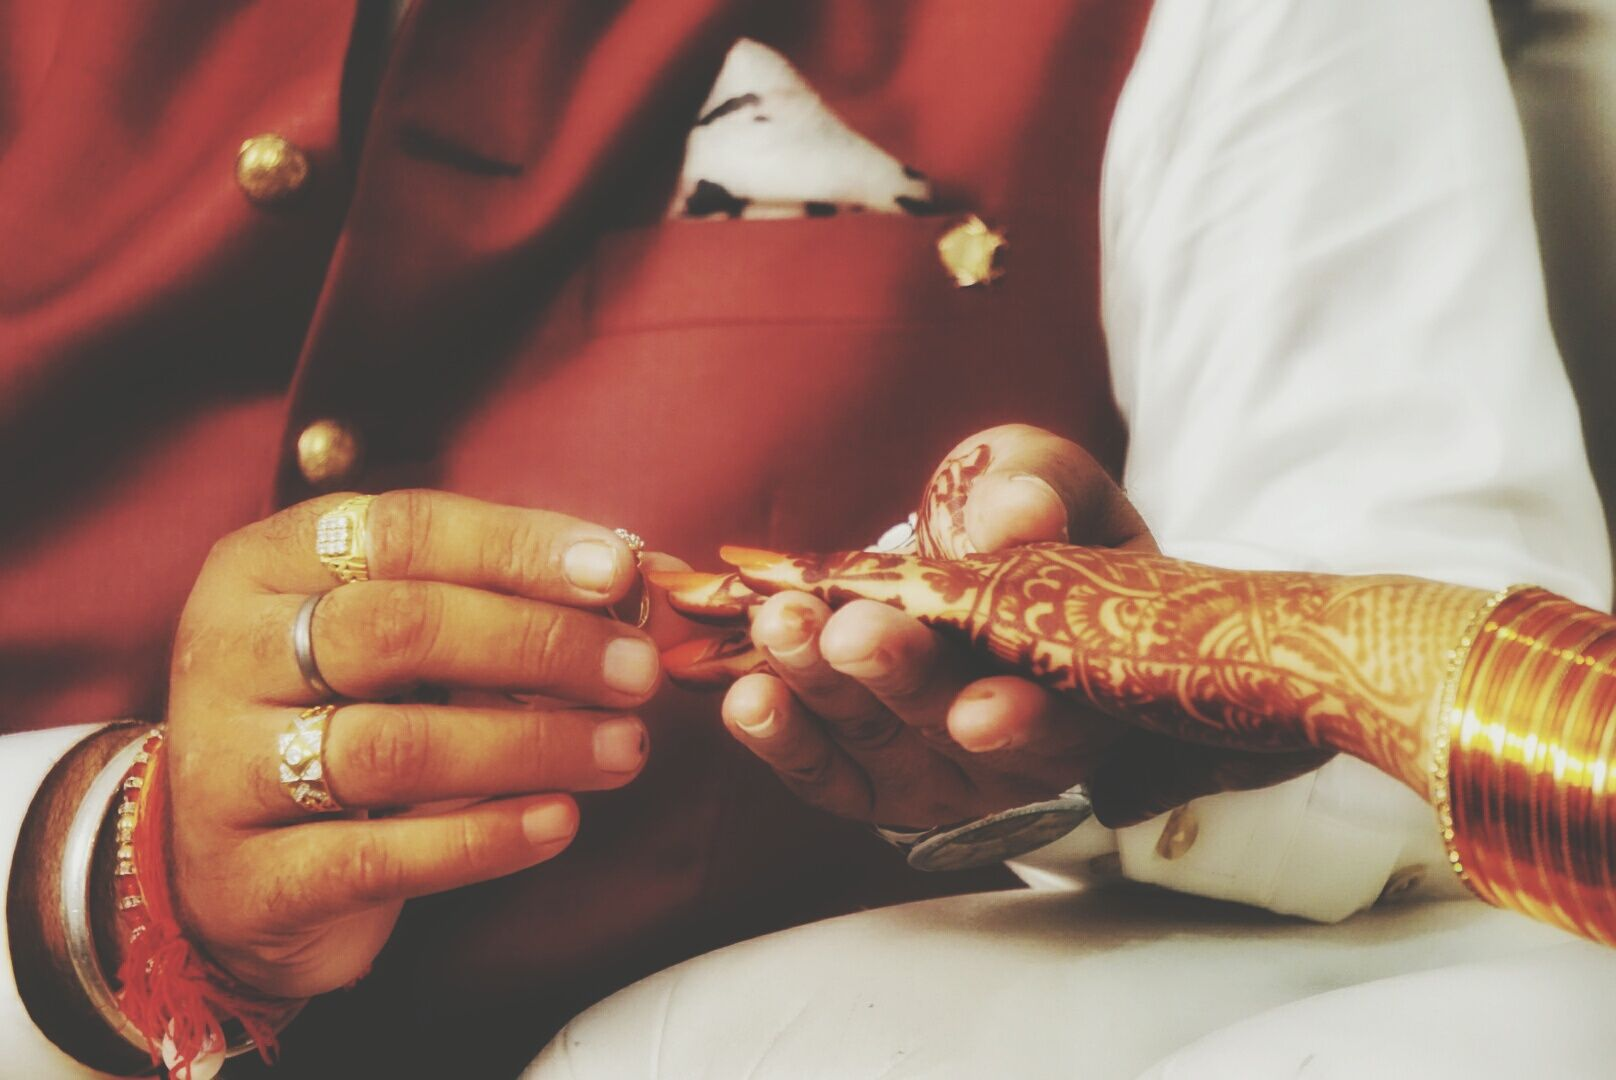 Groom-to-be putting an engagement ring on bride-to-be's finger at a Hindu engagement ceremony